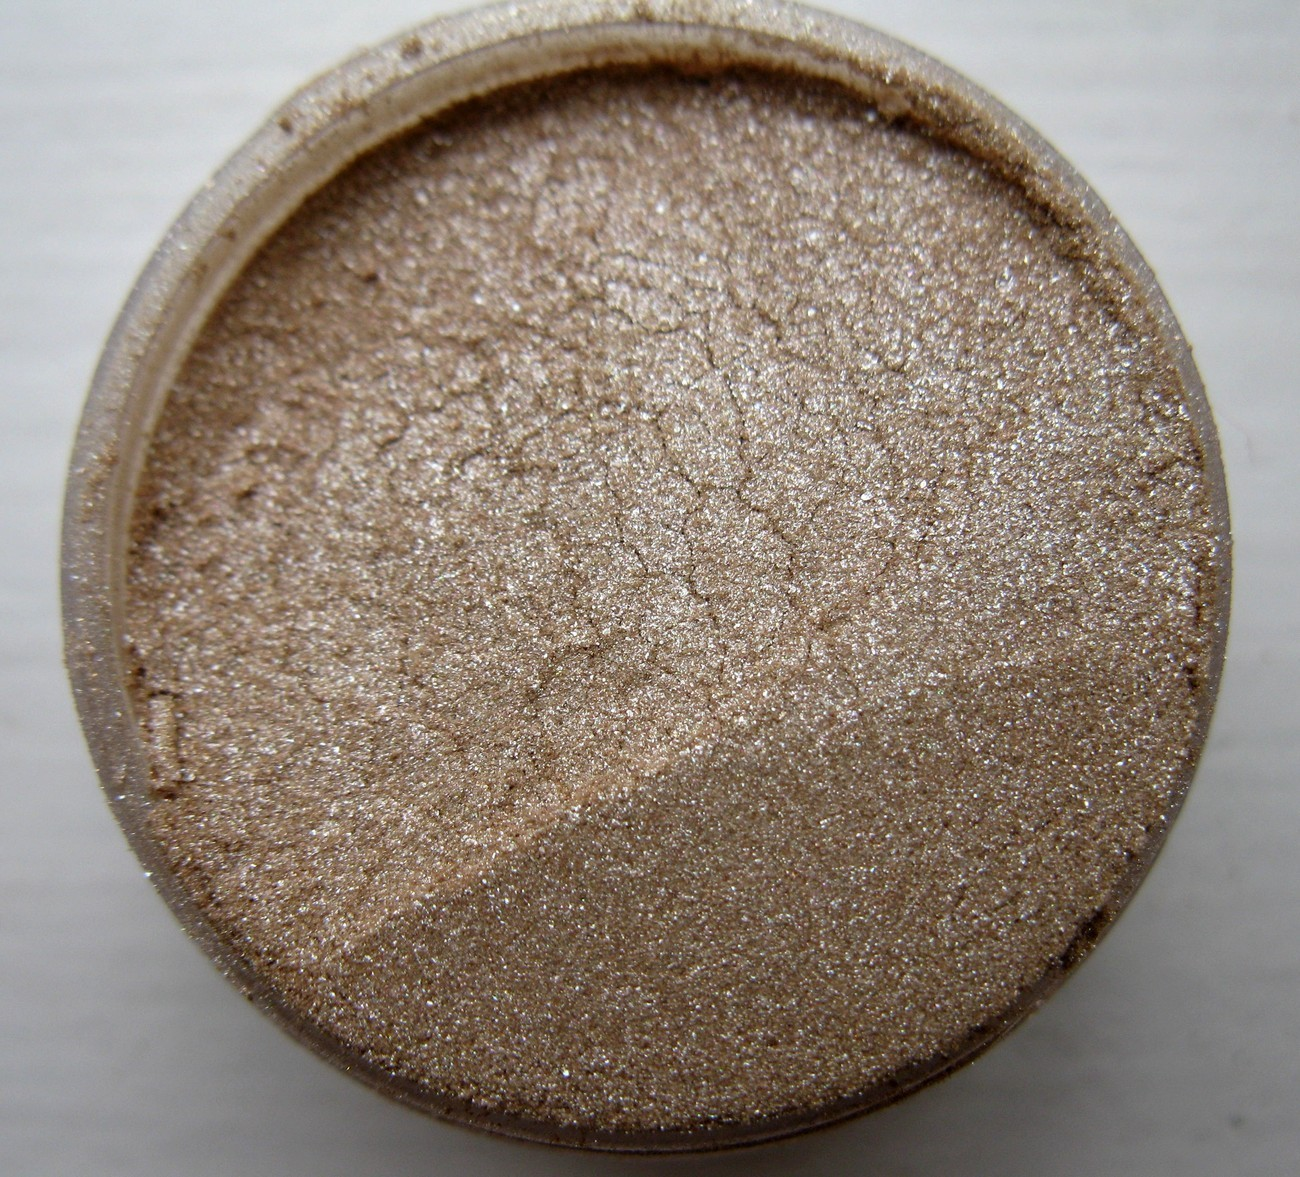 EYE SHADOW MINERALS FULL 5 GRAM SHADE: SAHARA SAND